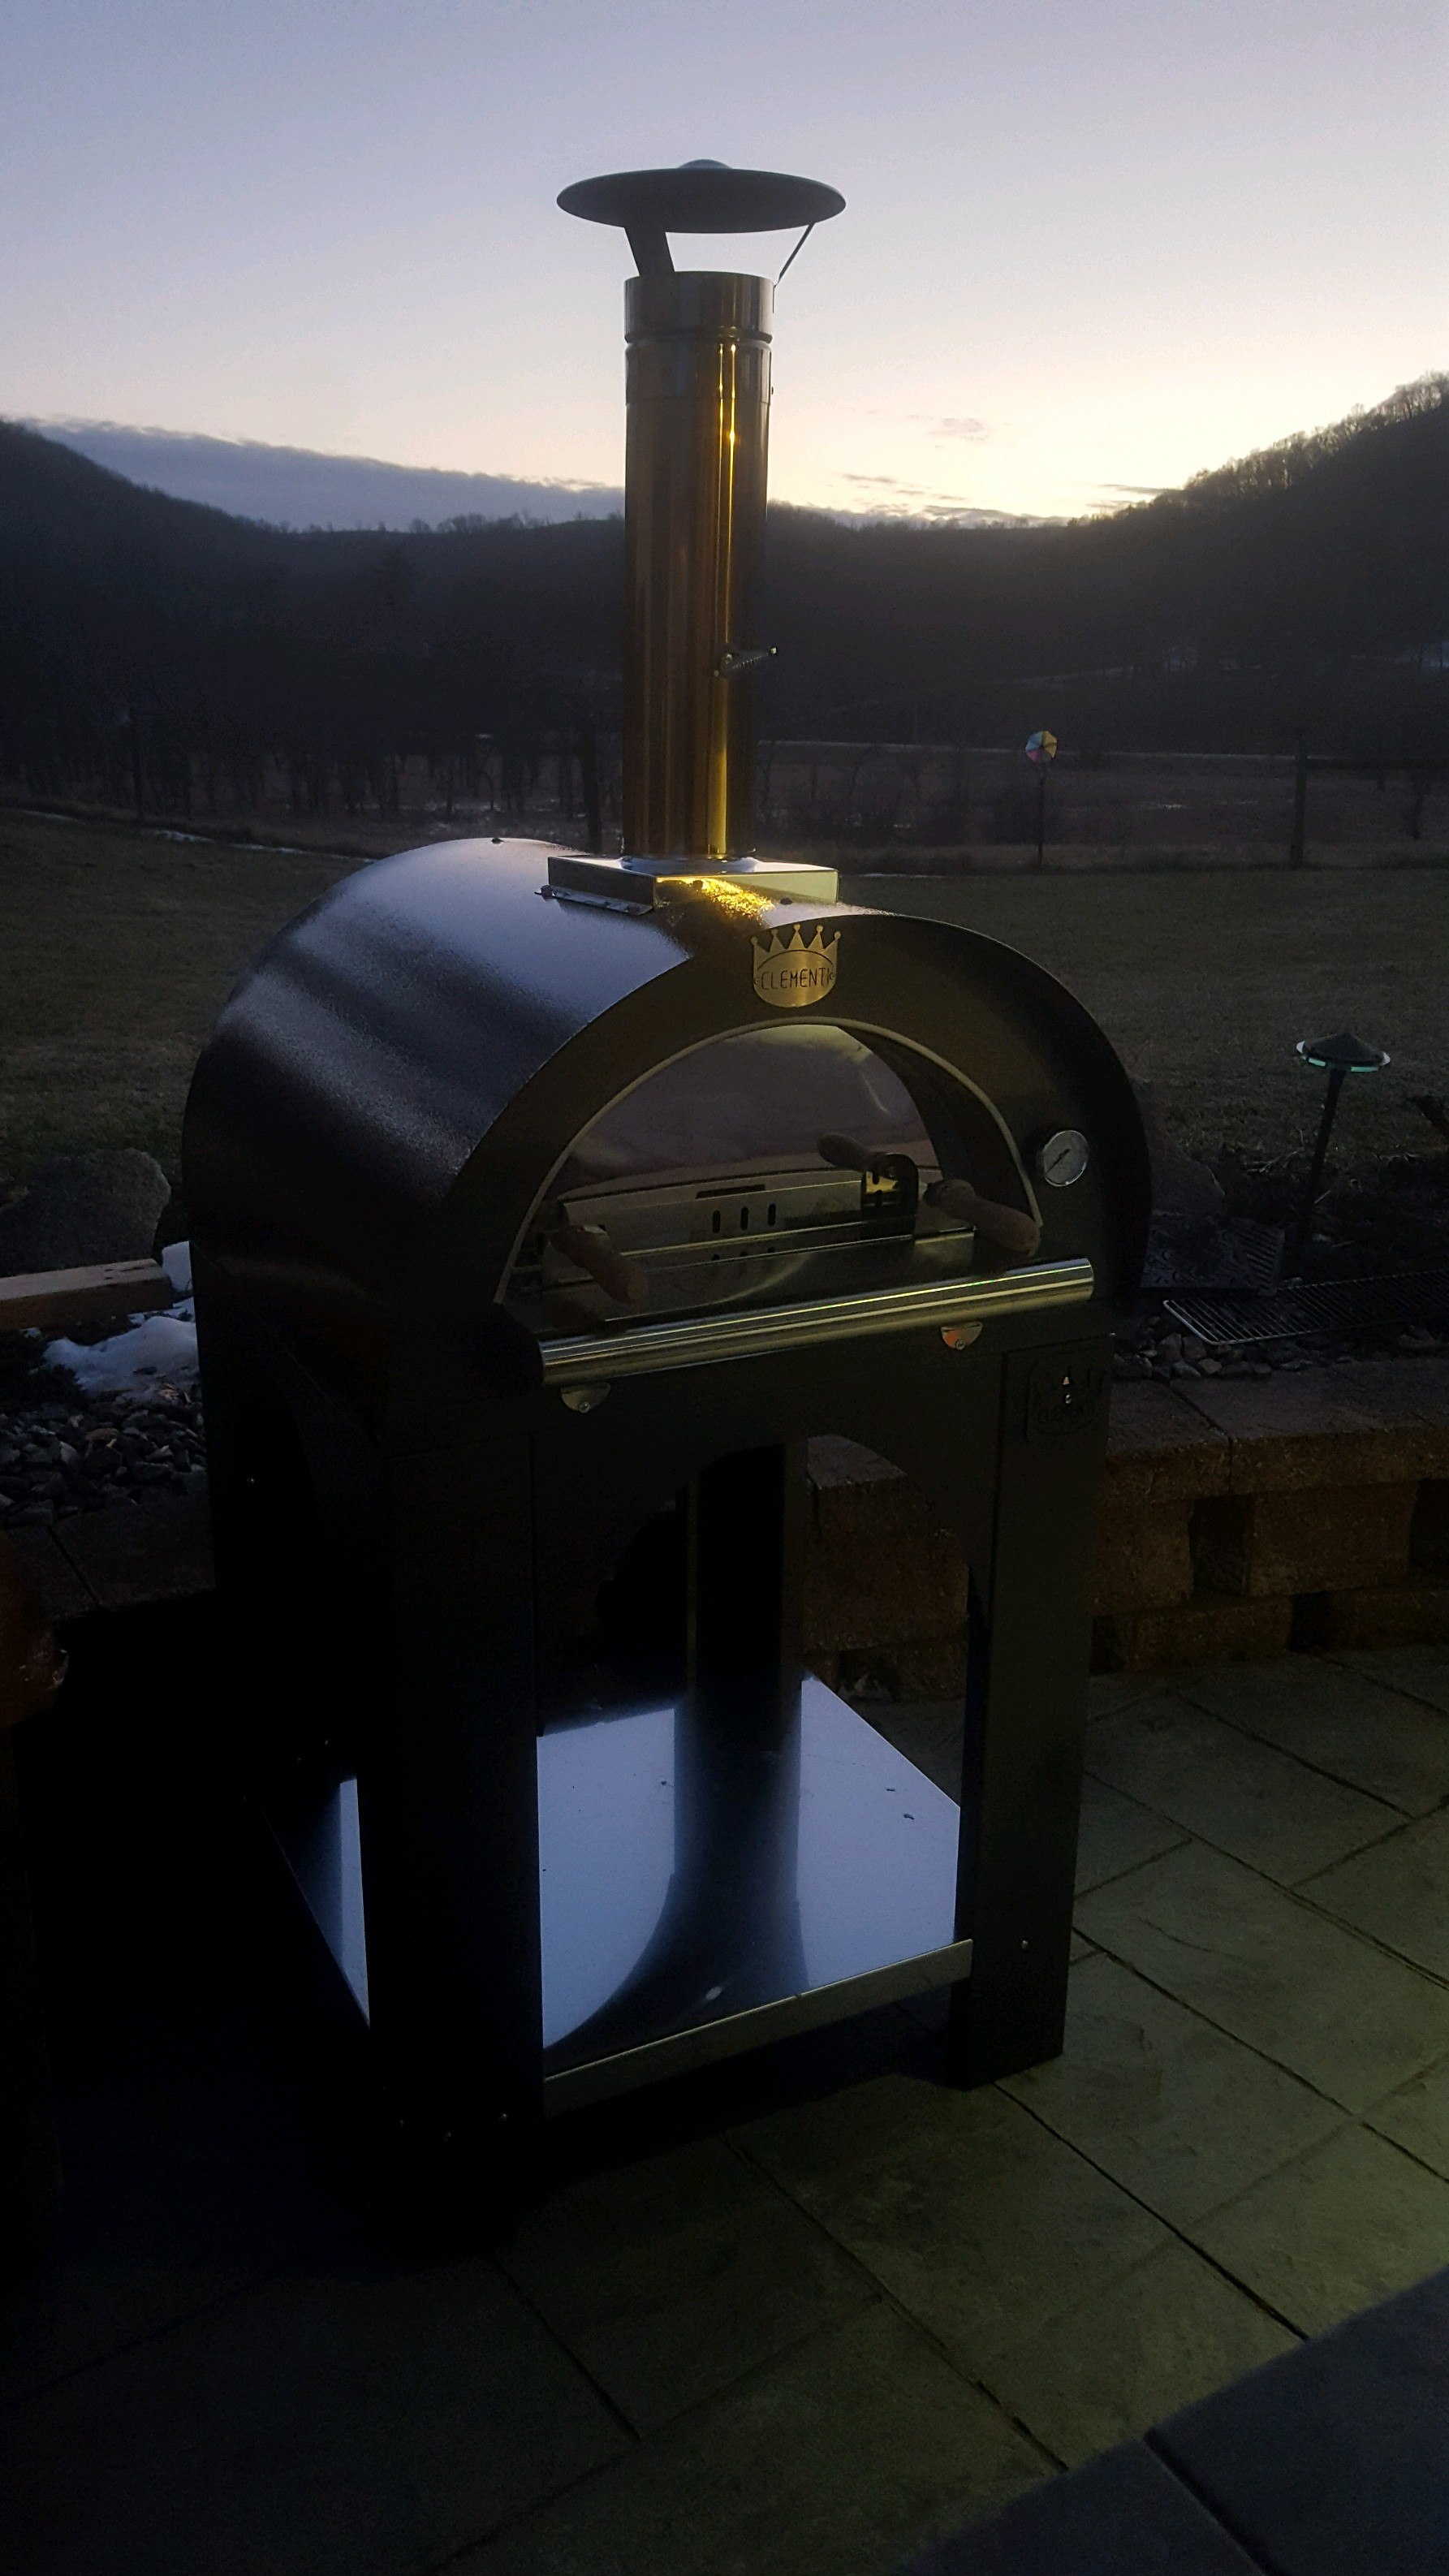 Clementi Wood Fired Pizza Oven from Italy - Pizza never tasted so good.